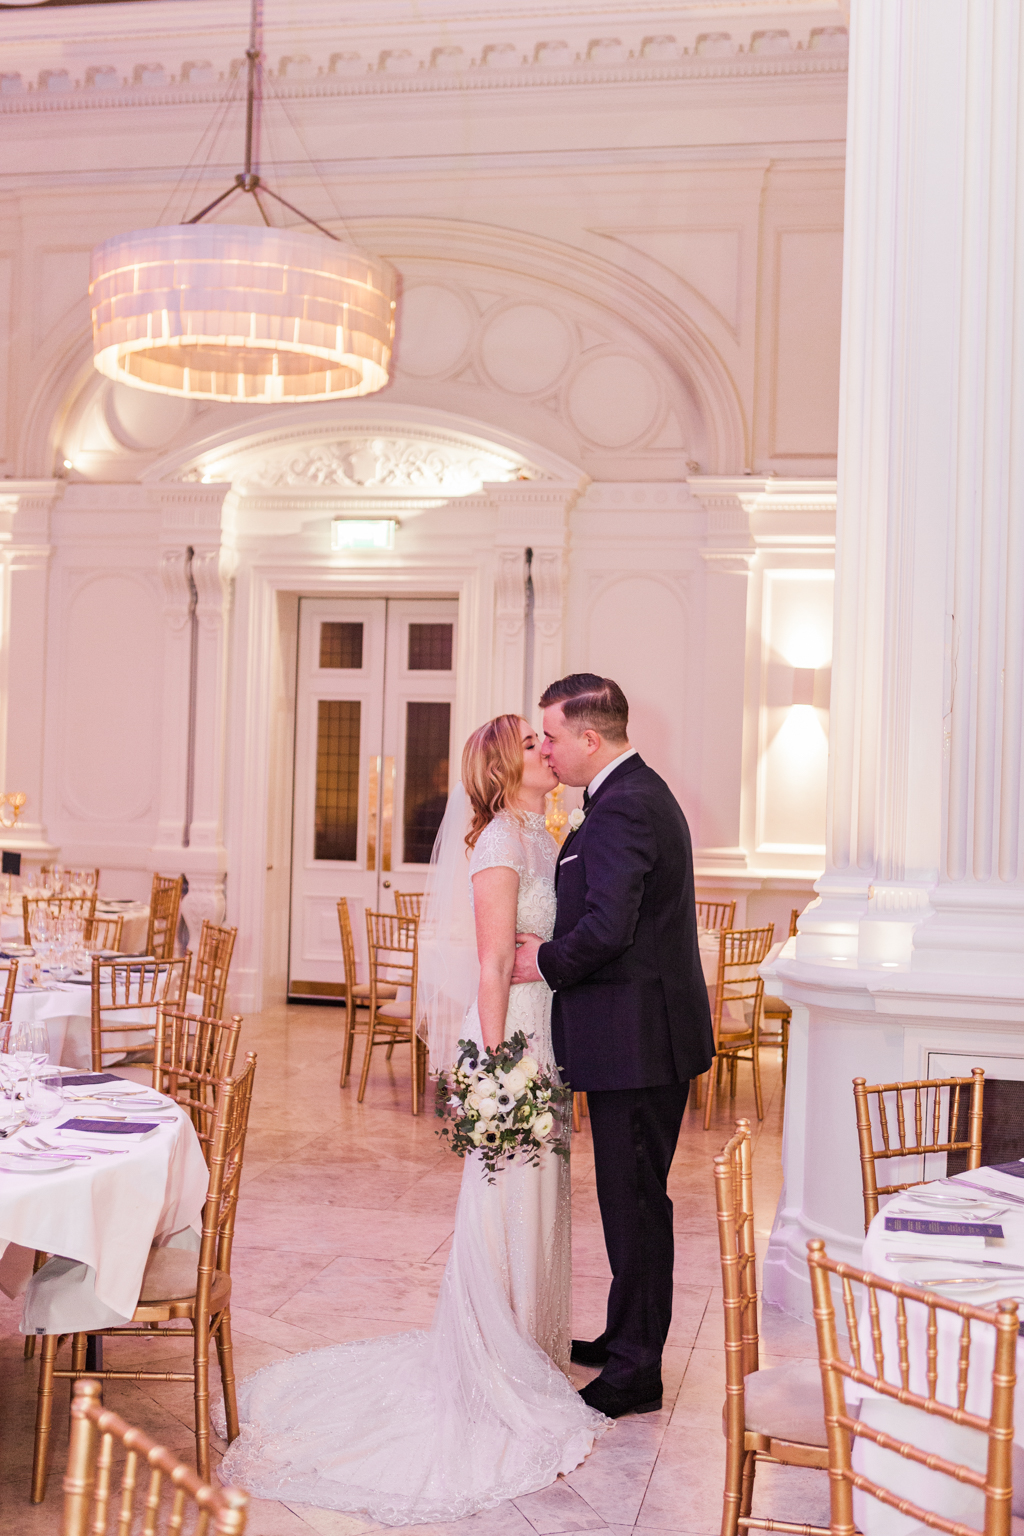 Rebecca & Tom's gloriously glamorous Andaz Hotel wedding, with Amanda Karen Photography (15)